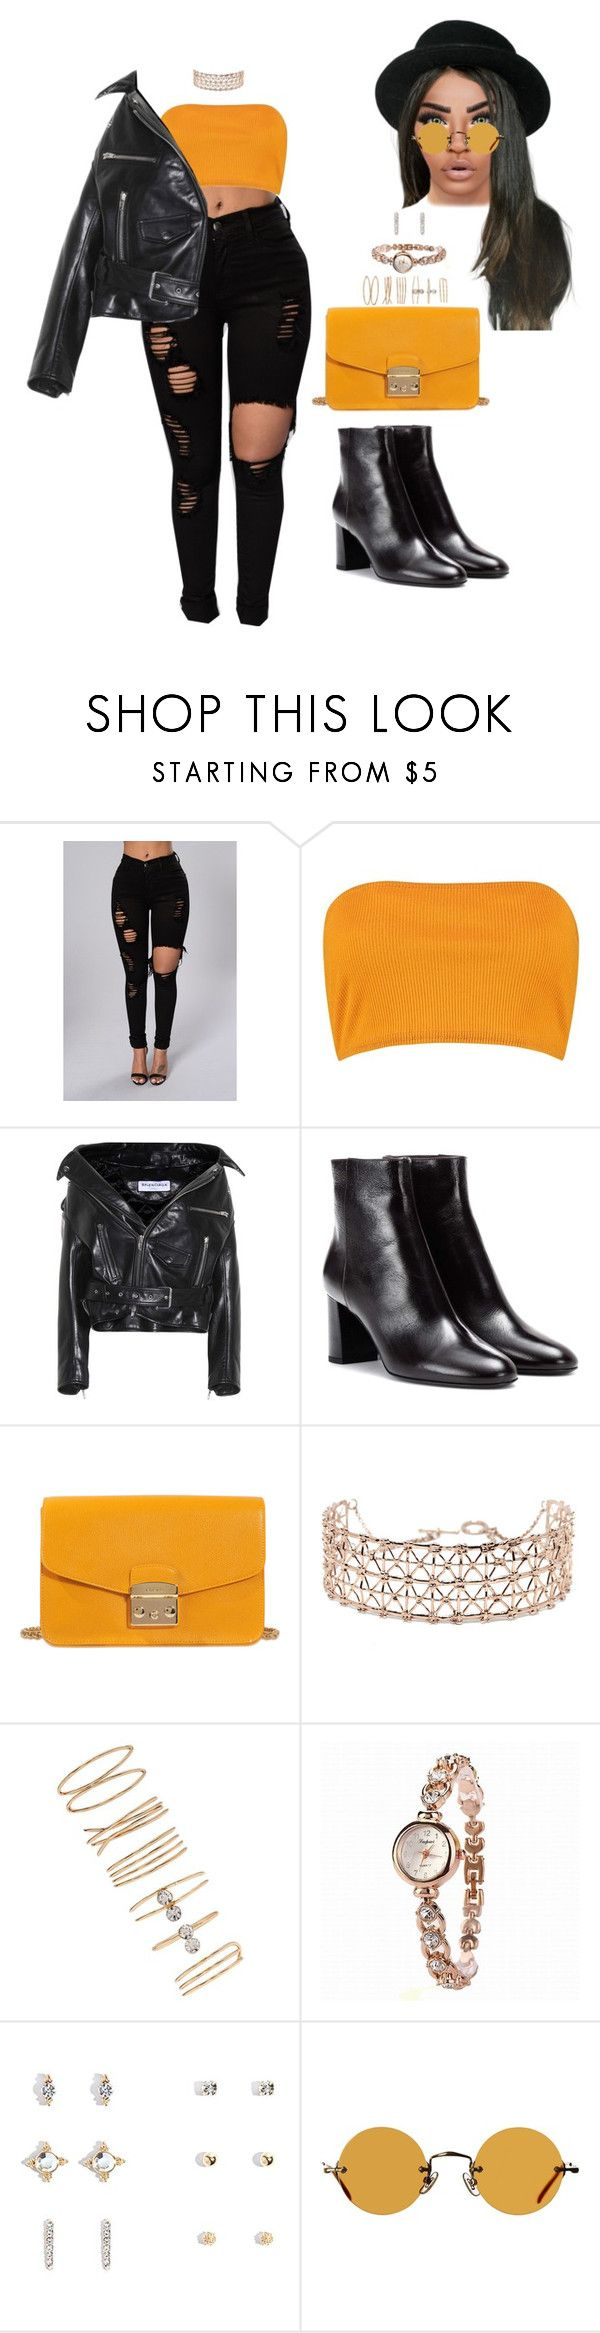 """Untitled #3032"" by mrkr-lawson ❤ liked on Polyvore featuring Boohoo, Balenciaga, Yves Saint Laurent, Furla, Co.Ro, Forever 21 and Hakusan"